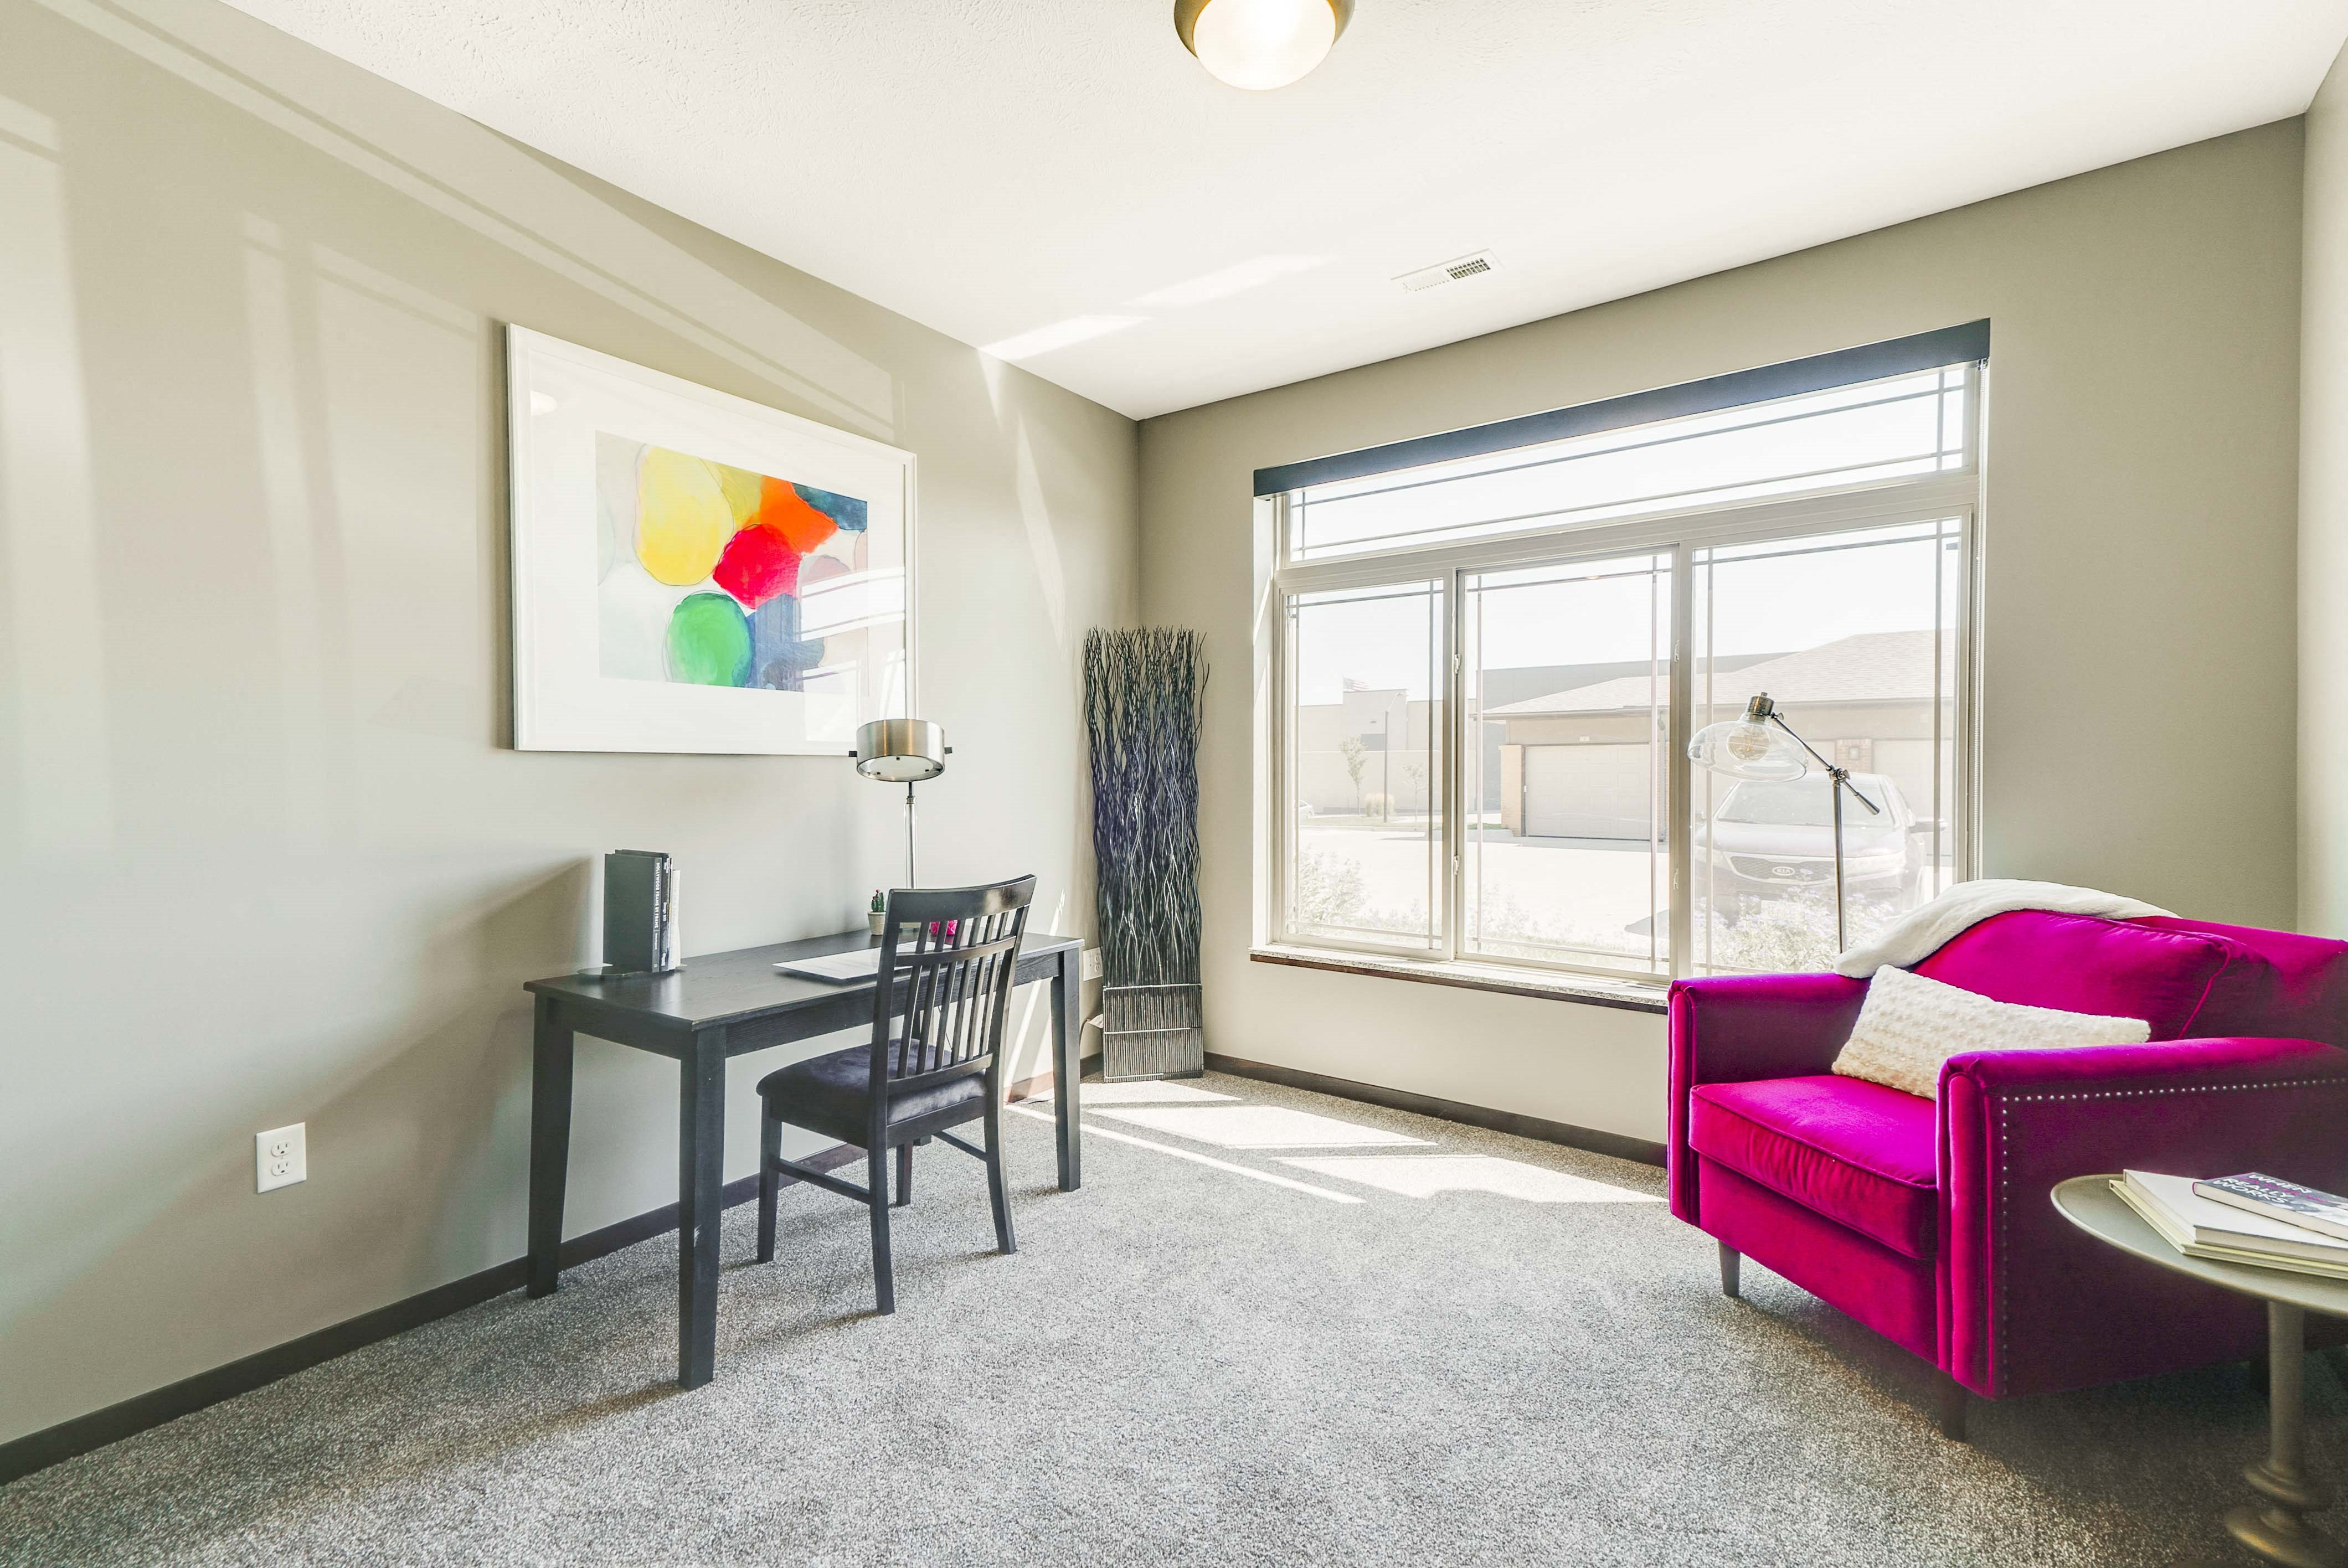 Large windows in a two bedroom apartment for rent at 360 at Jordan West best new apartments West Des Moines IA 50266